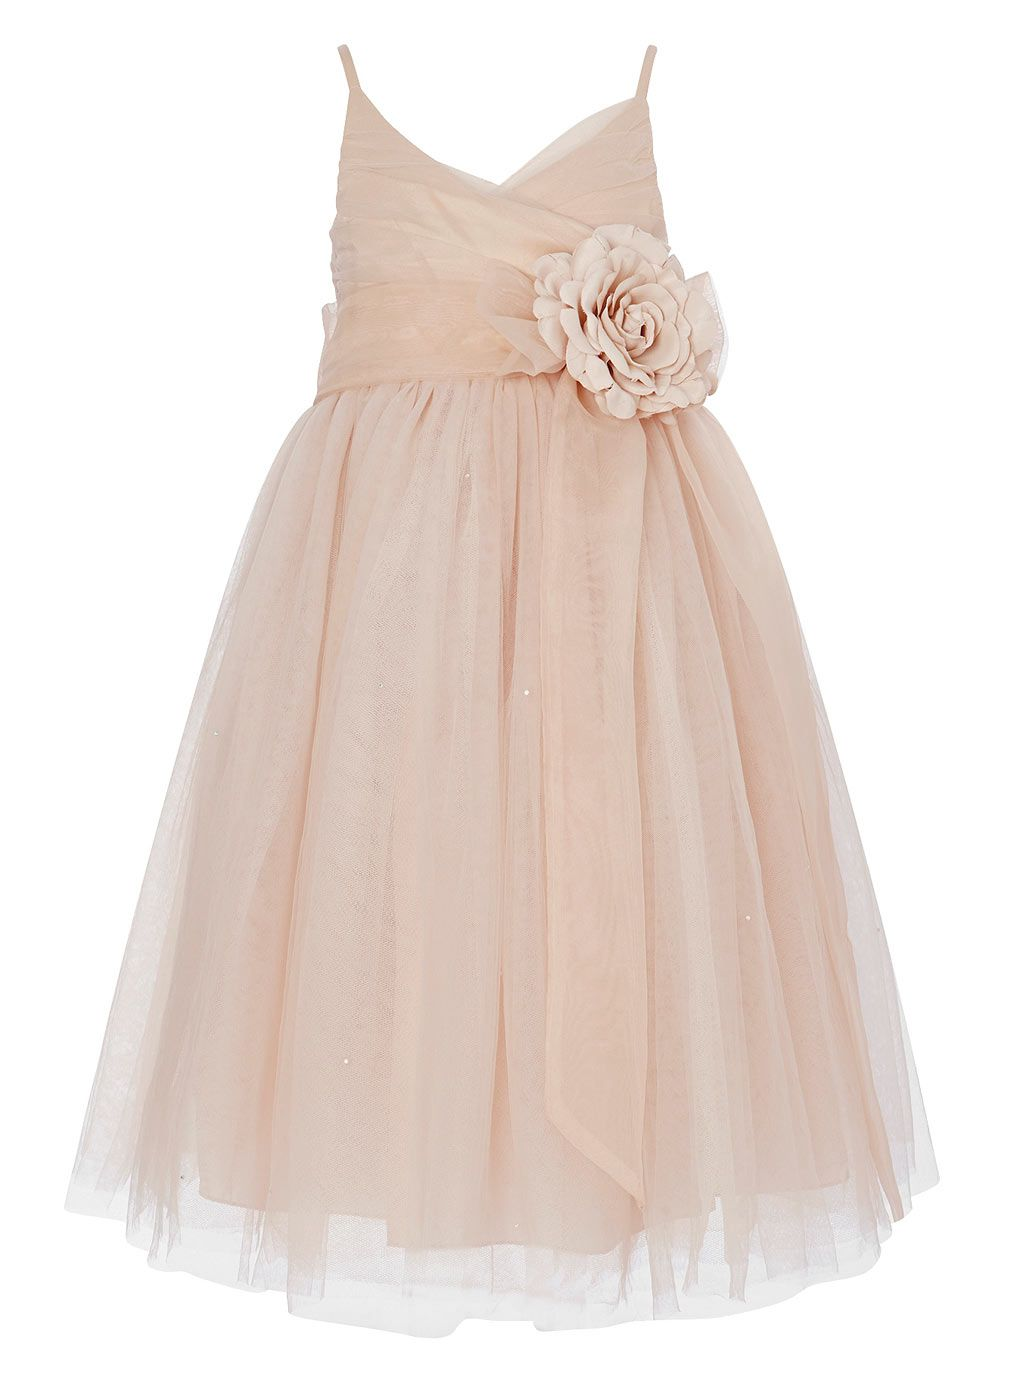 595dca577e1 tulle layered pearl pink double straps ankle length flower girl dress